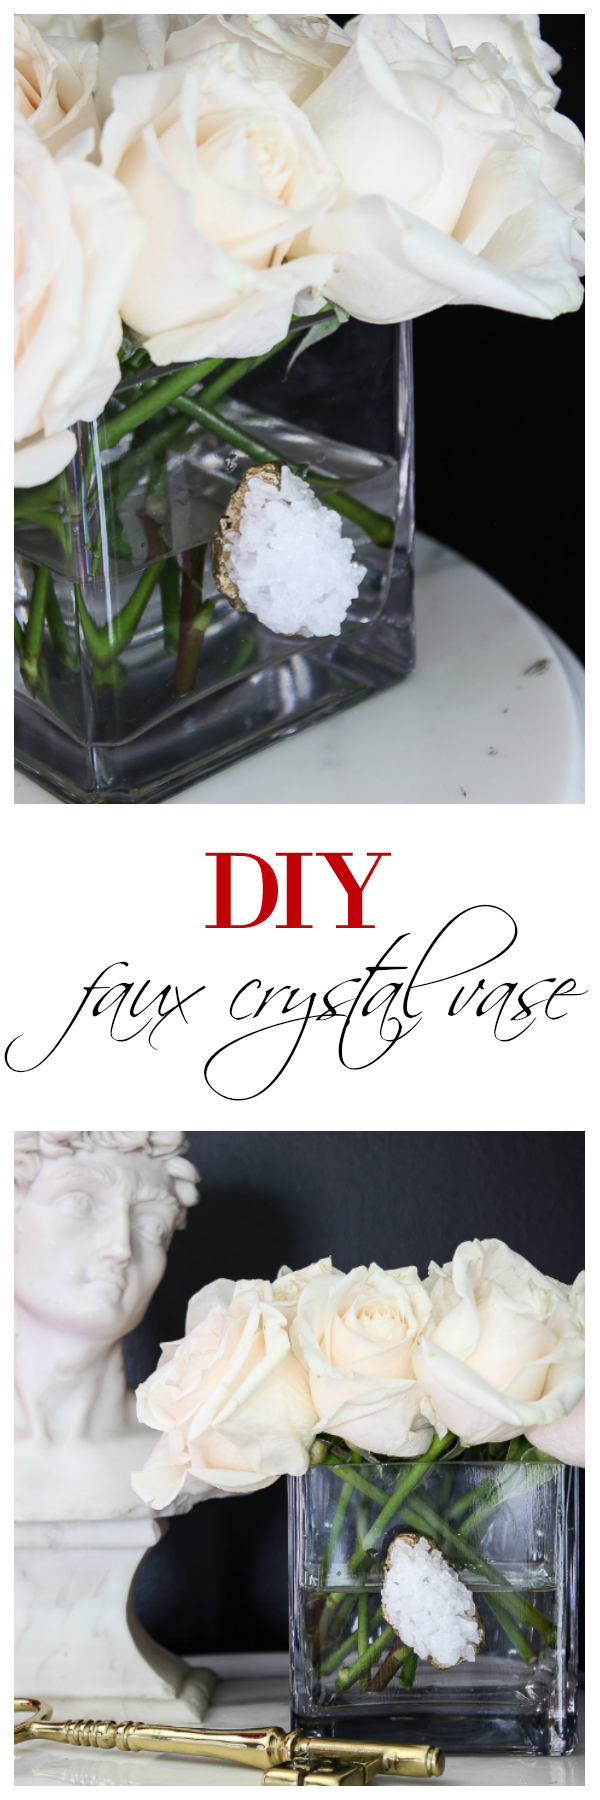 Embellish plain vases with these faux crystals! Use this tutorial for a DIY Faux Crystal Vase to make your own in 10 minutes or less!